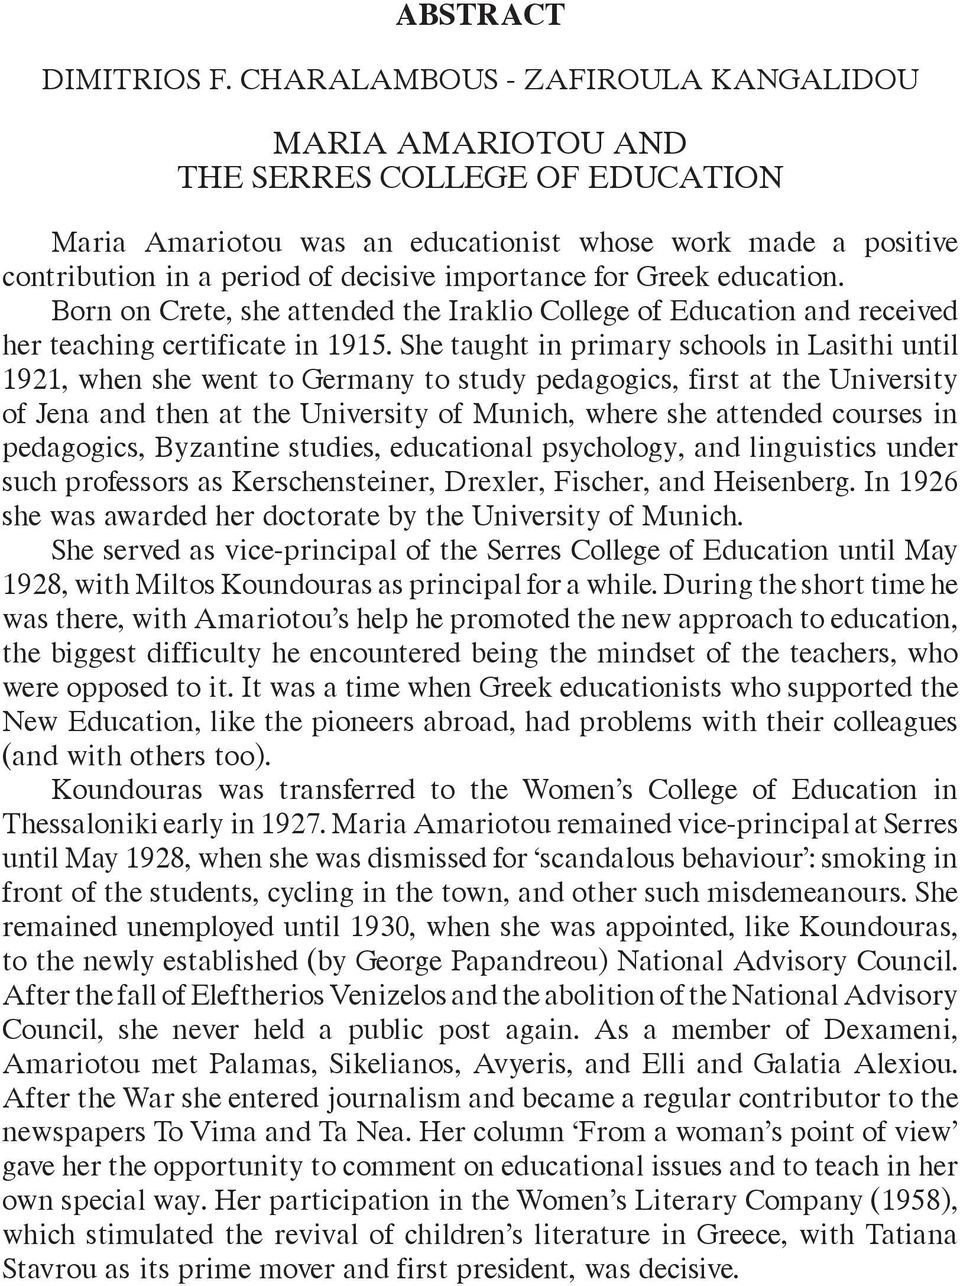 for Greek education. Born on Crete, she attended the Iraklio College of Education and received her teaching certificate in 1915.